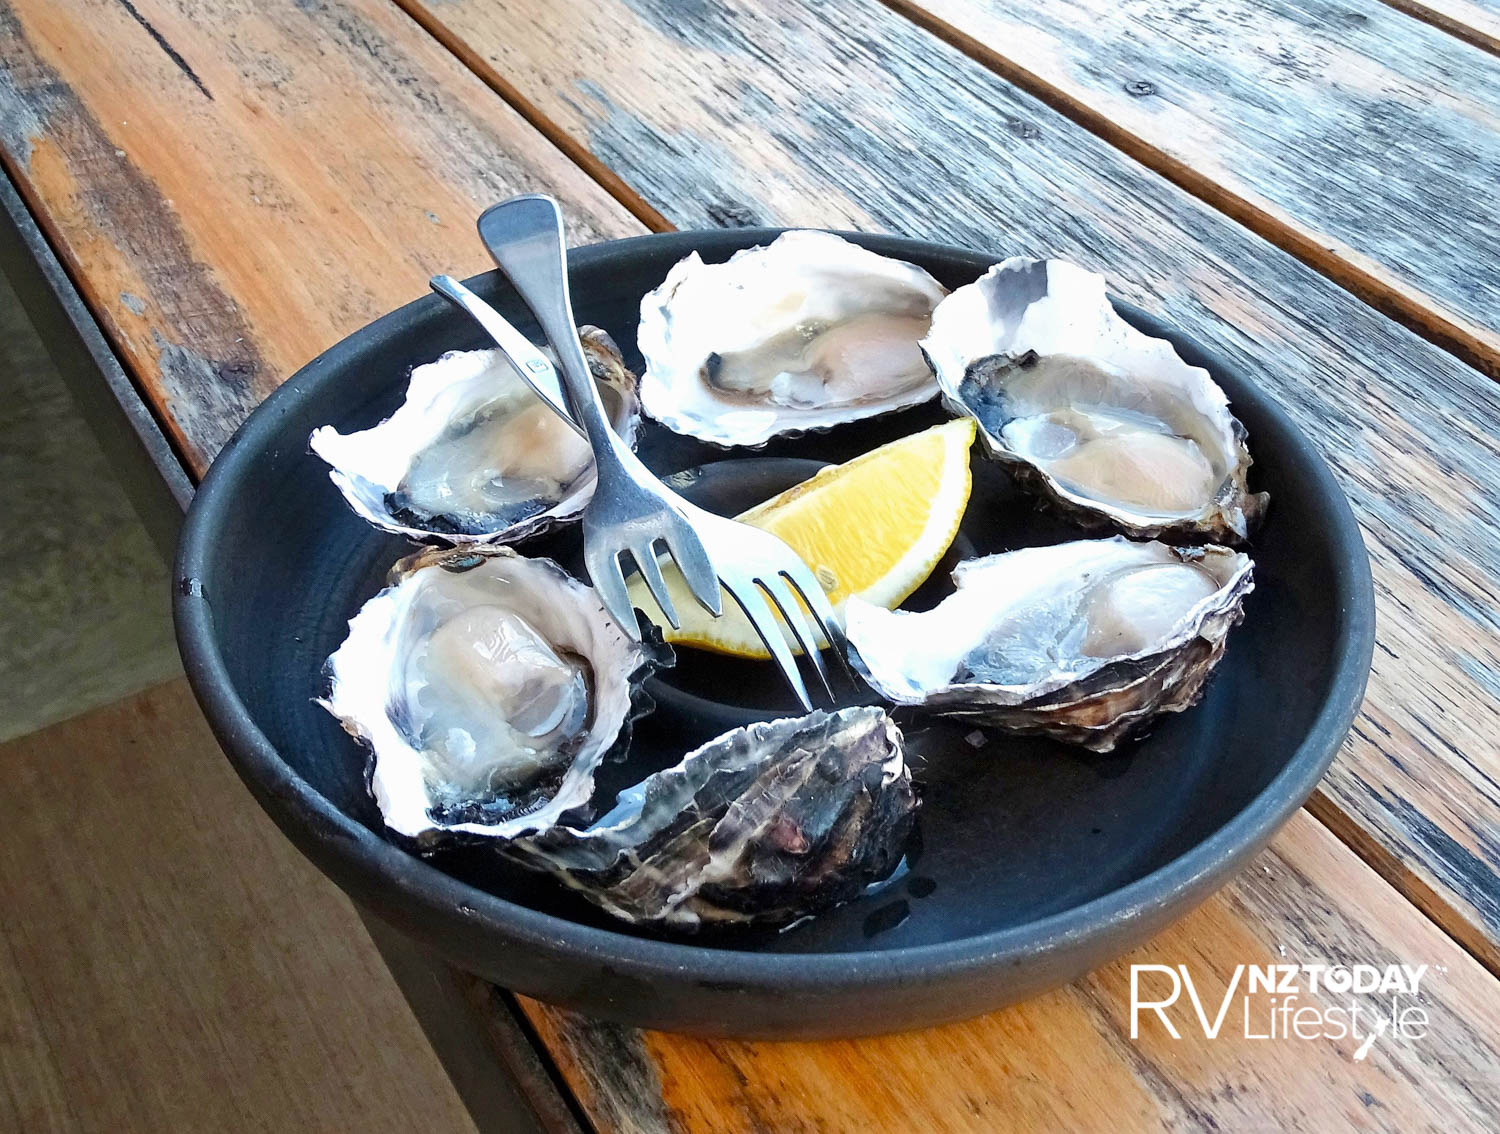 A delicious plateful of oysters